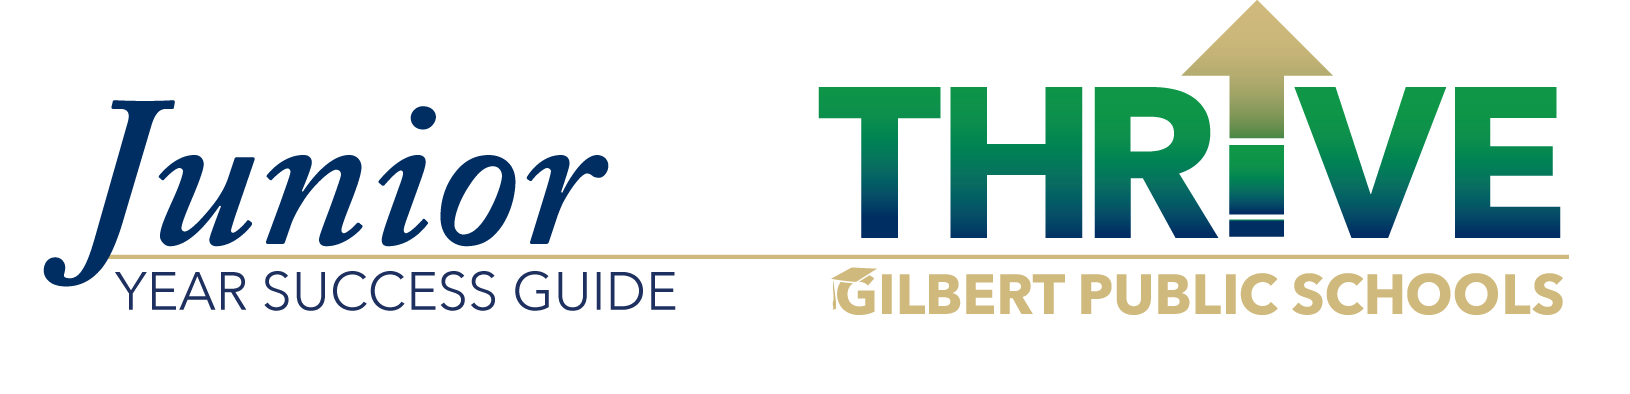 Junior Year Success Guide THRIVE Gilbert Public Schools